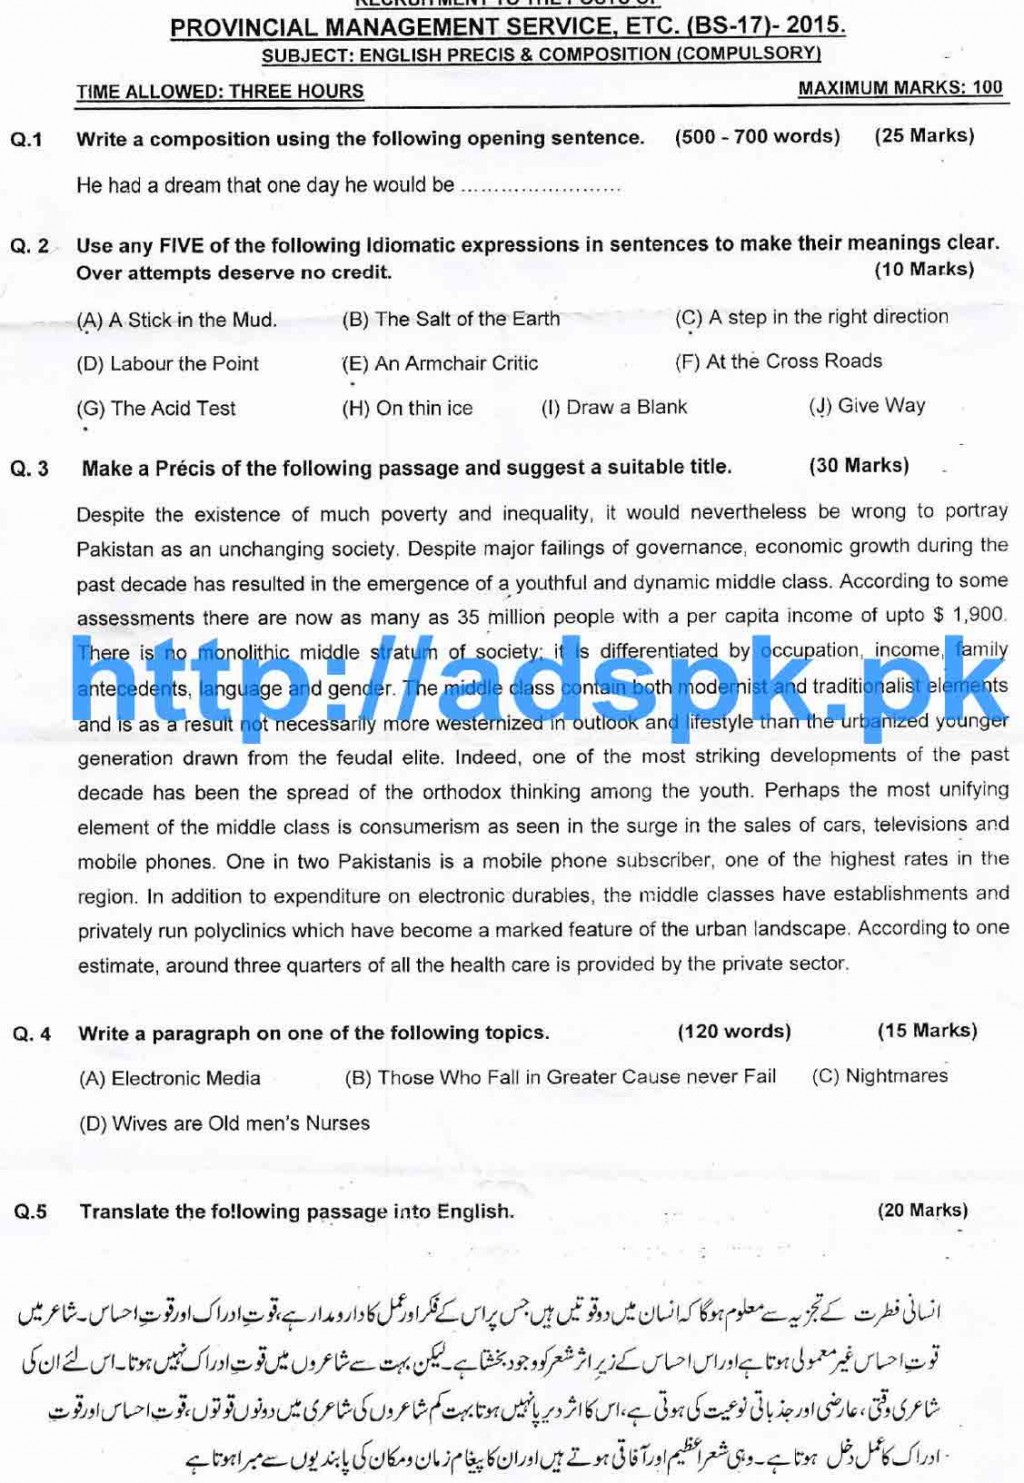 006 Determination Essay Latest Govt Jobs Pms Papers English Precise Composition Compulsory Provincial Management Service Must Prepare Now By Ppsc Lahore Pakistan Paper Remarkable Conclusion Sample Large